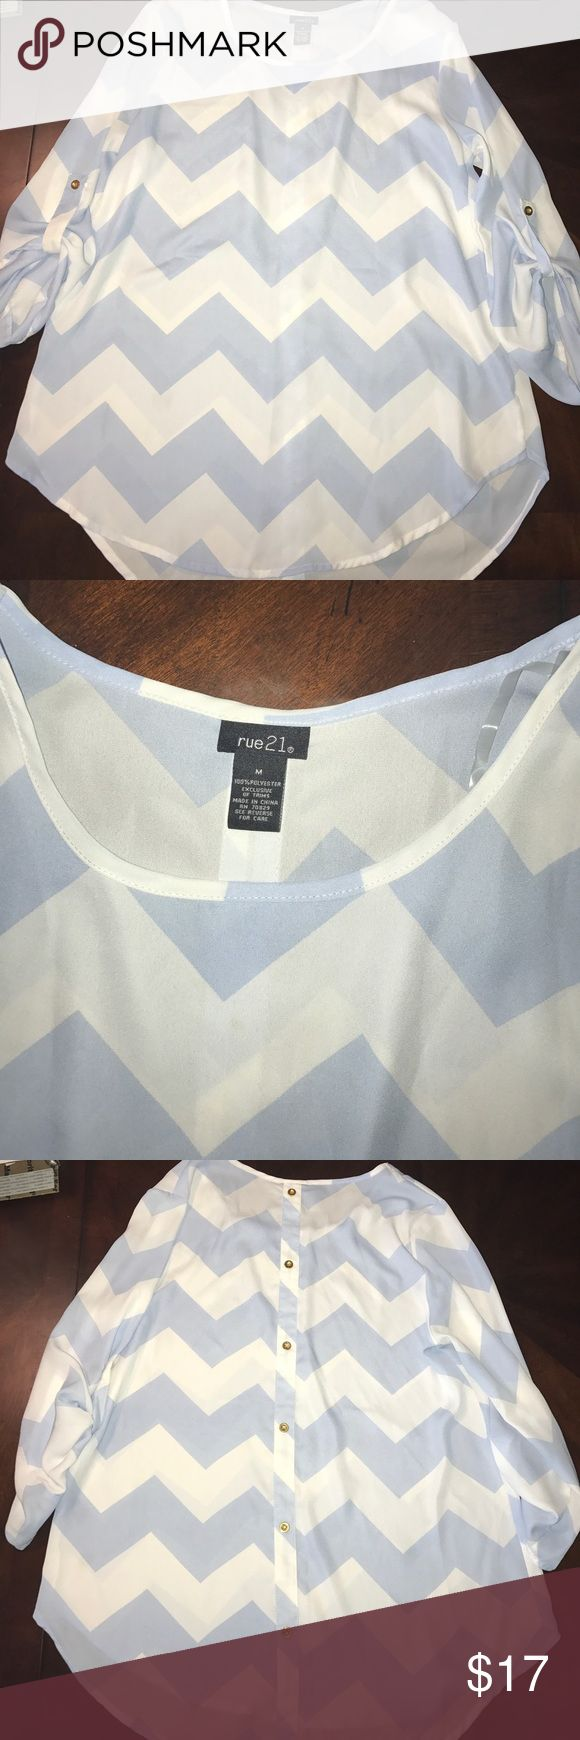 Trendy Chevron Blouse Super trendy pale blue and white chevron Blouse with gold button accents at the elbows for three quarter length sleeves and along the back. Never worn. Rue 21 Tops Blouses